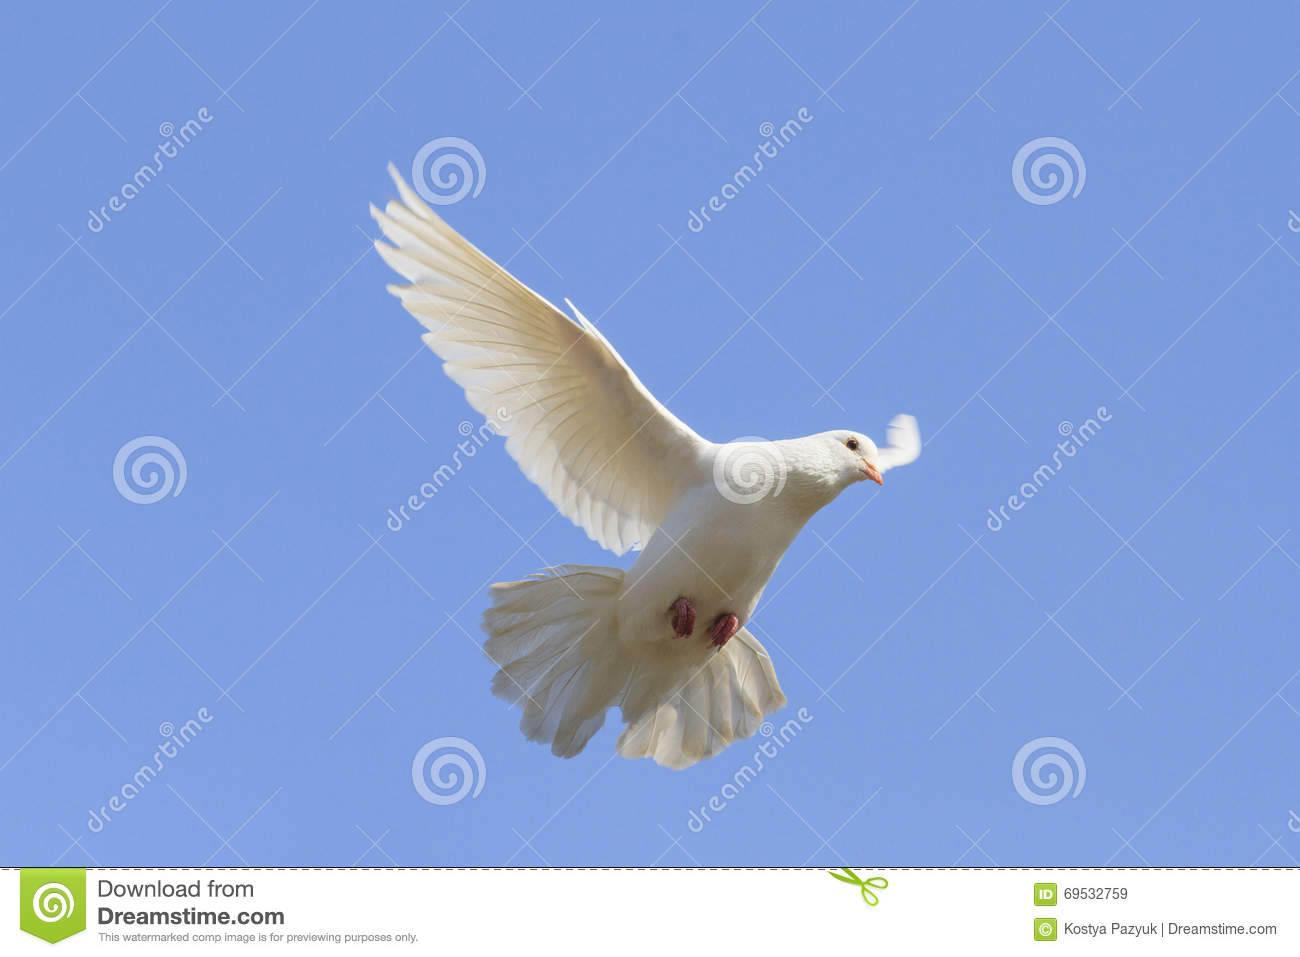 Symbol Of Peace Is Flying In The Sky Stock Image Image Of Letter